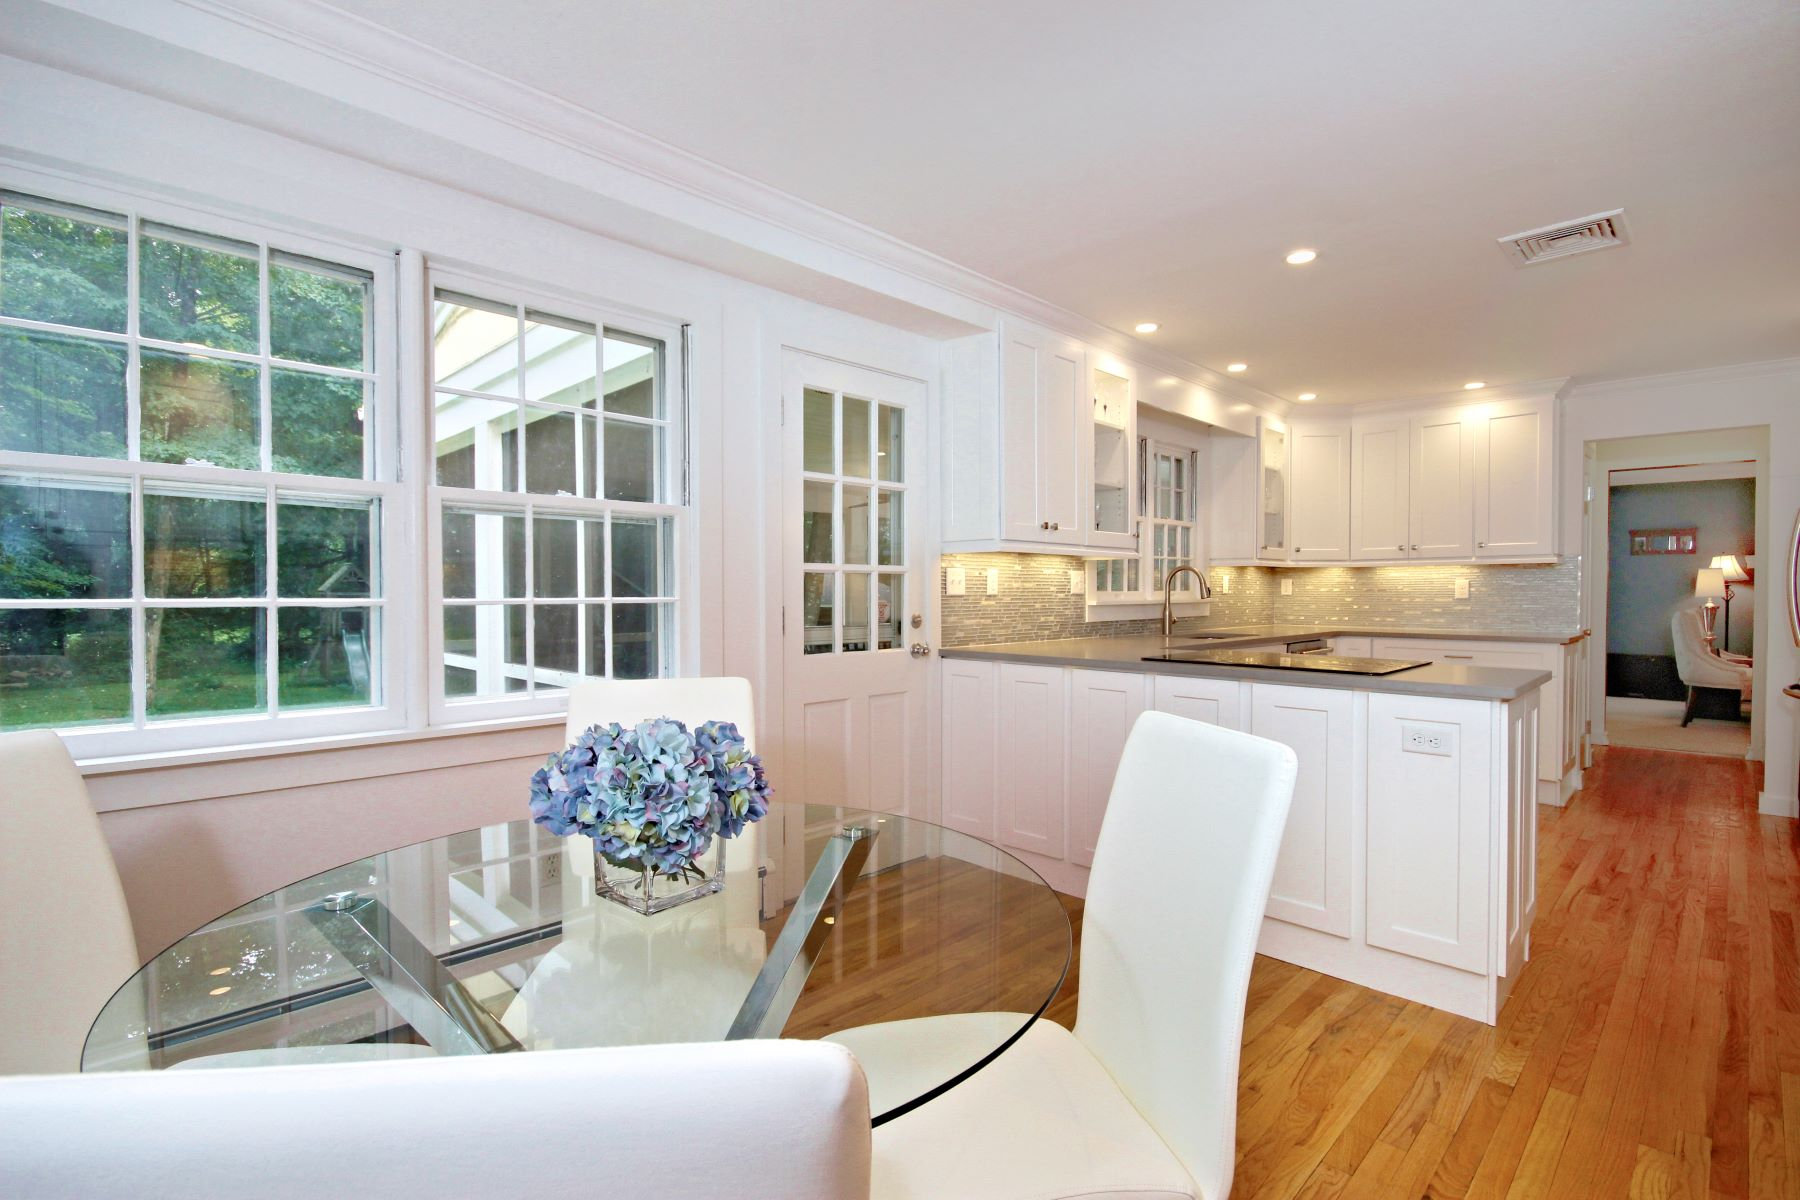 Single Family Homes for Sale at Great Colonial on One of the Most Coveted Streets in Lower Weston 33 Norfield Rd, Weston, Connecticut 06883 United States